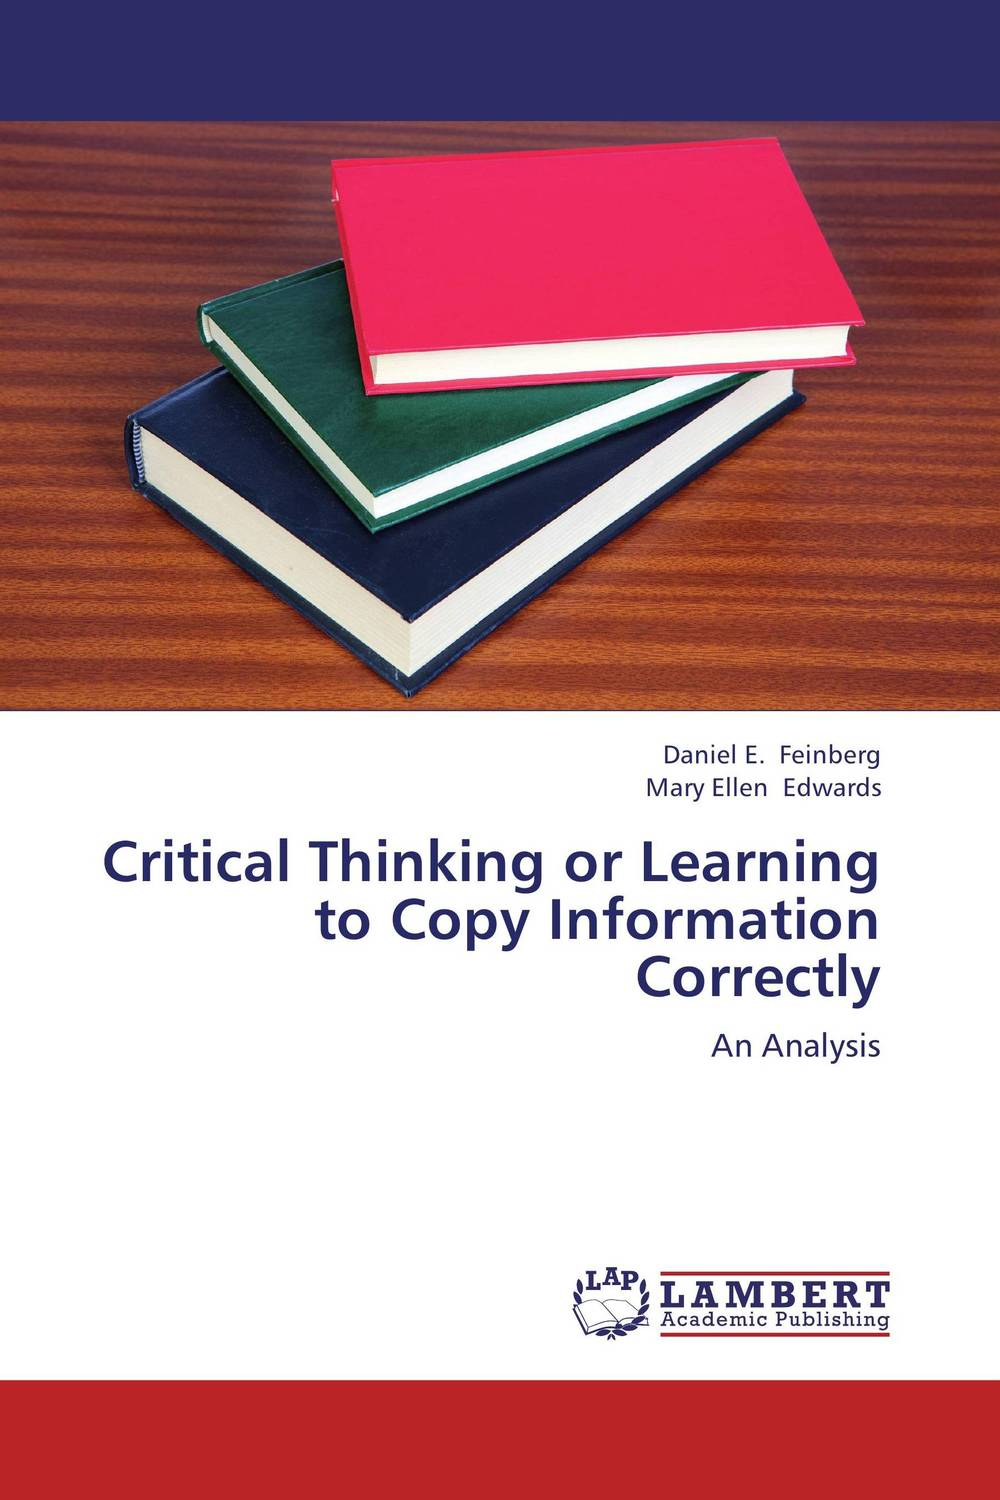 Critical Thinking or Learning to Copy Information Correctly